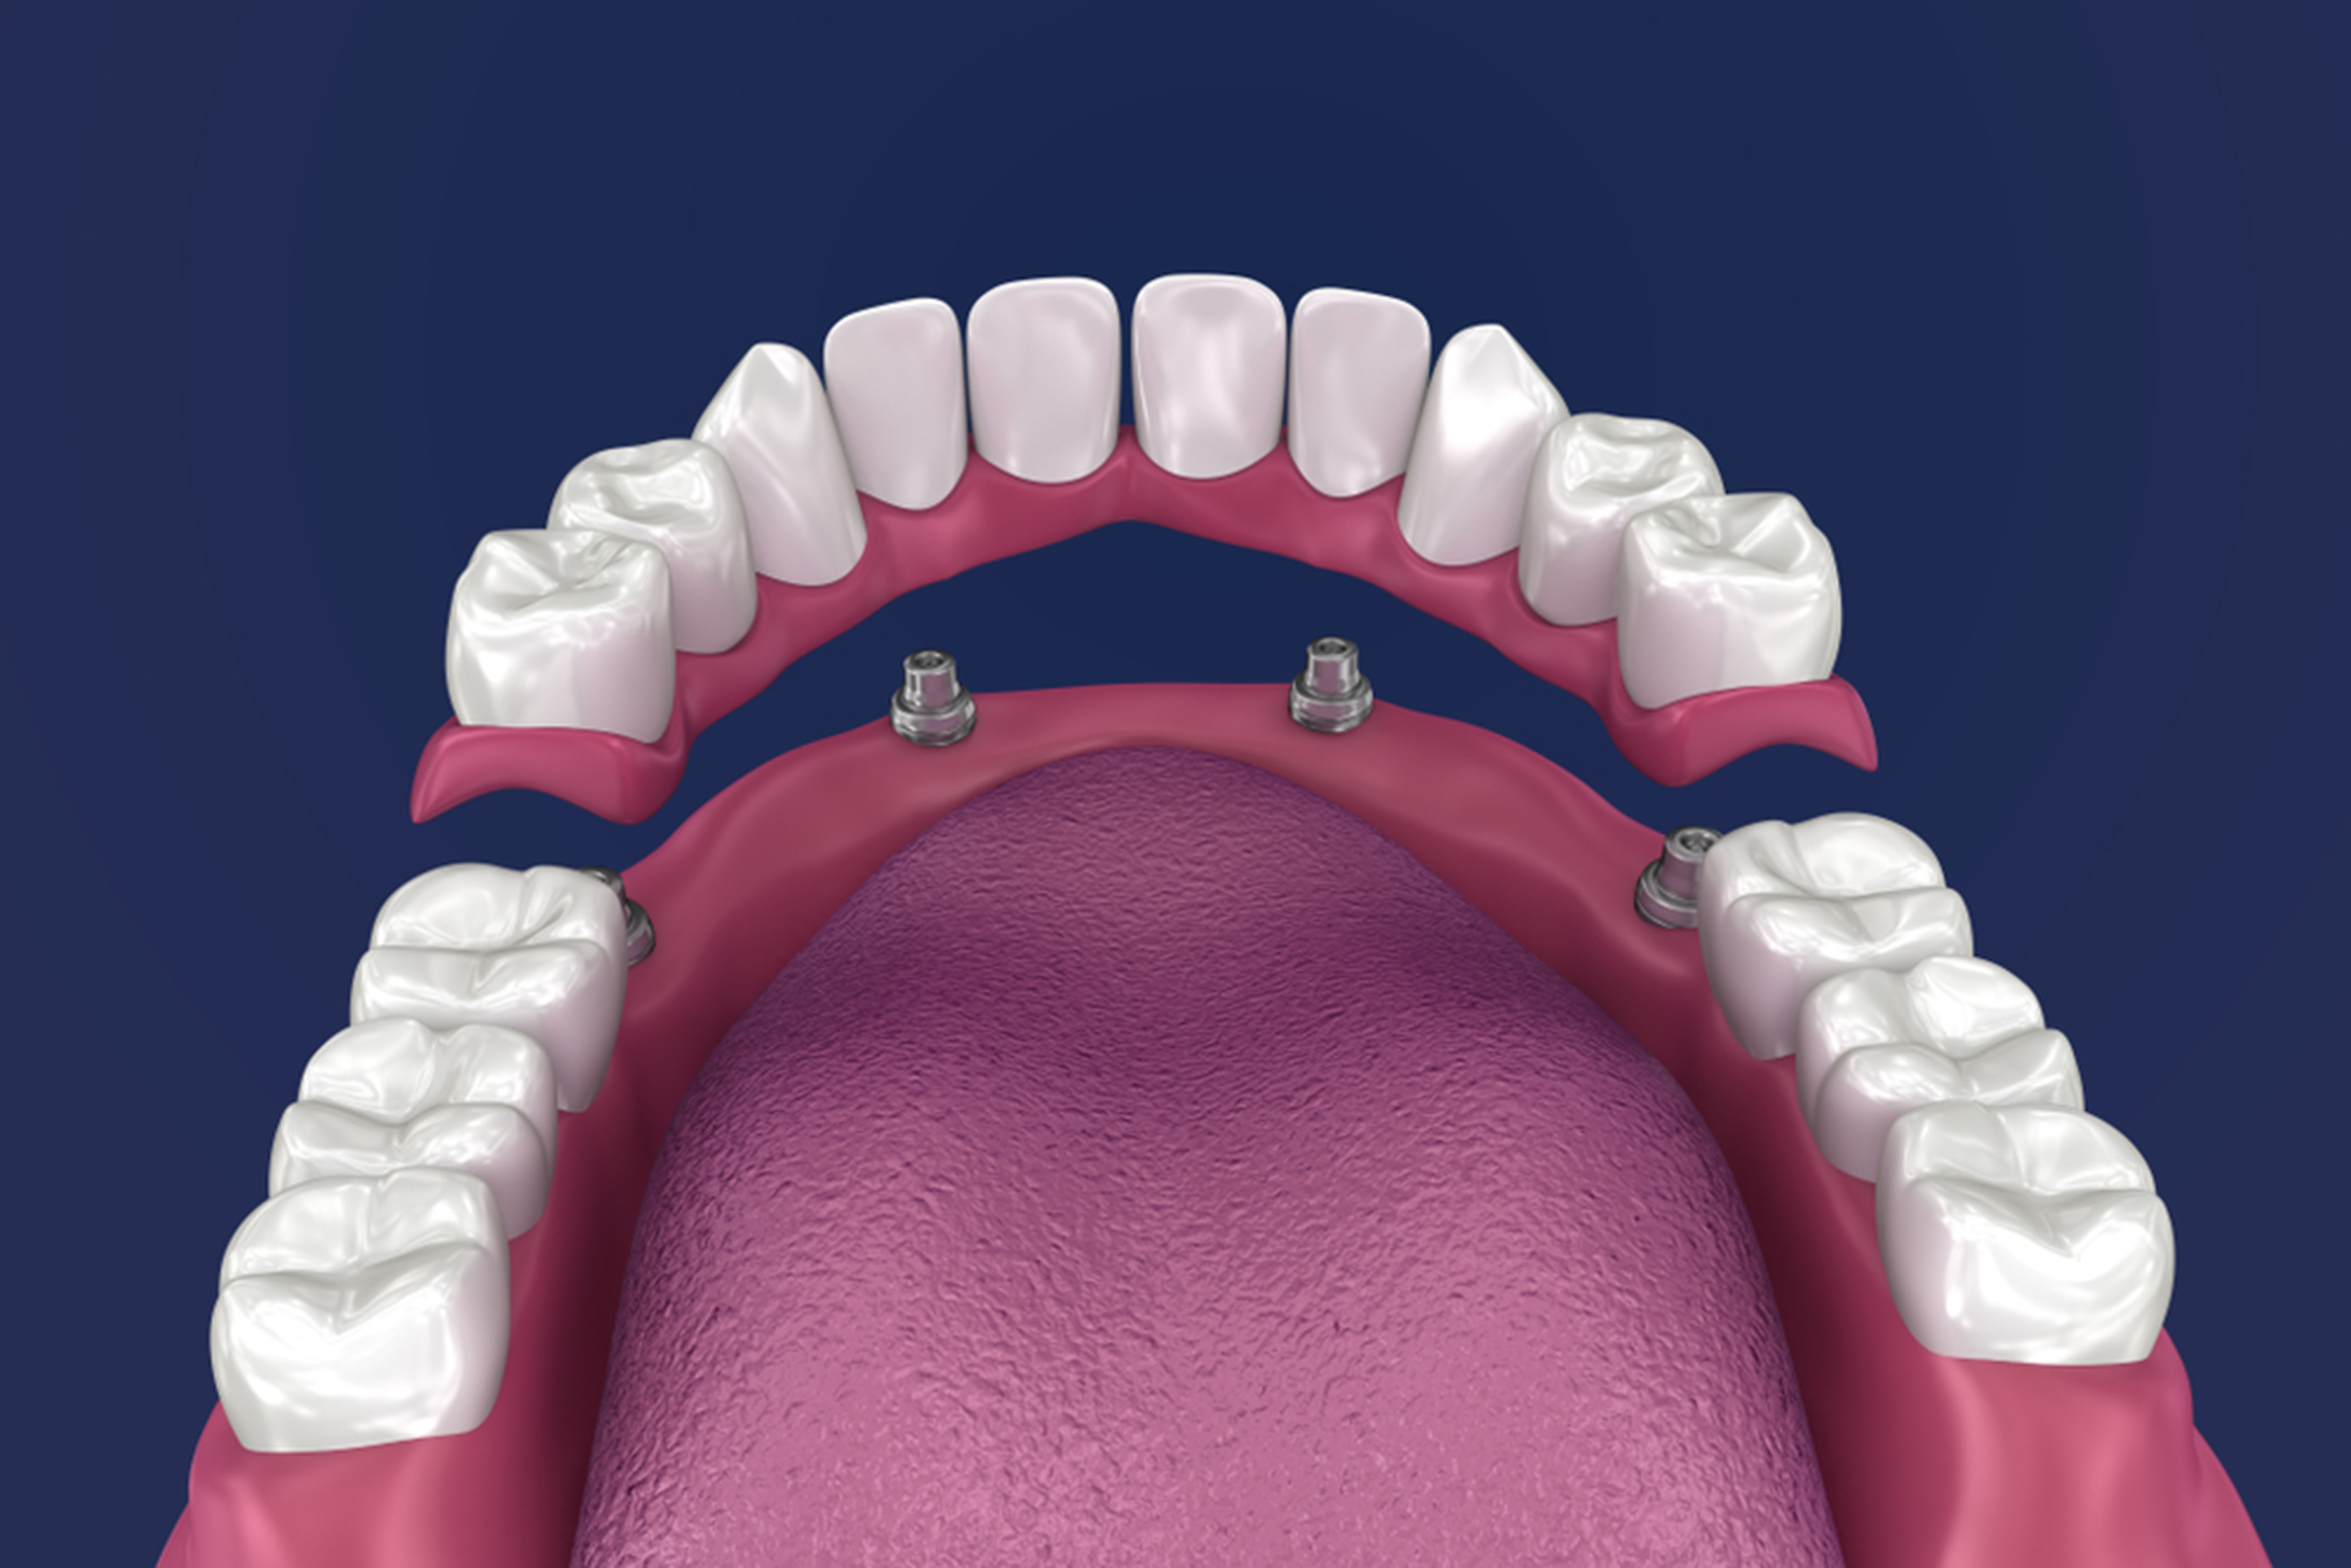 Why Dental Implants Are Becoming So Popular